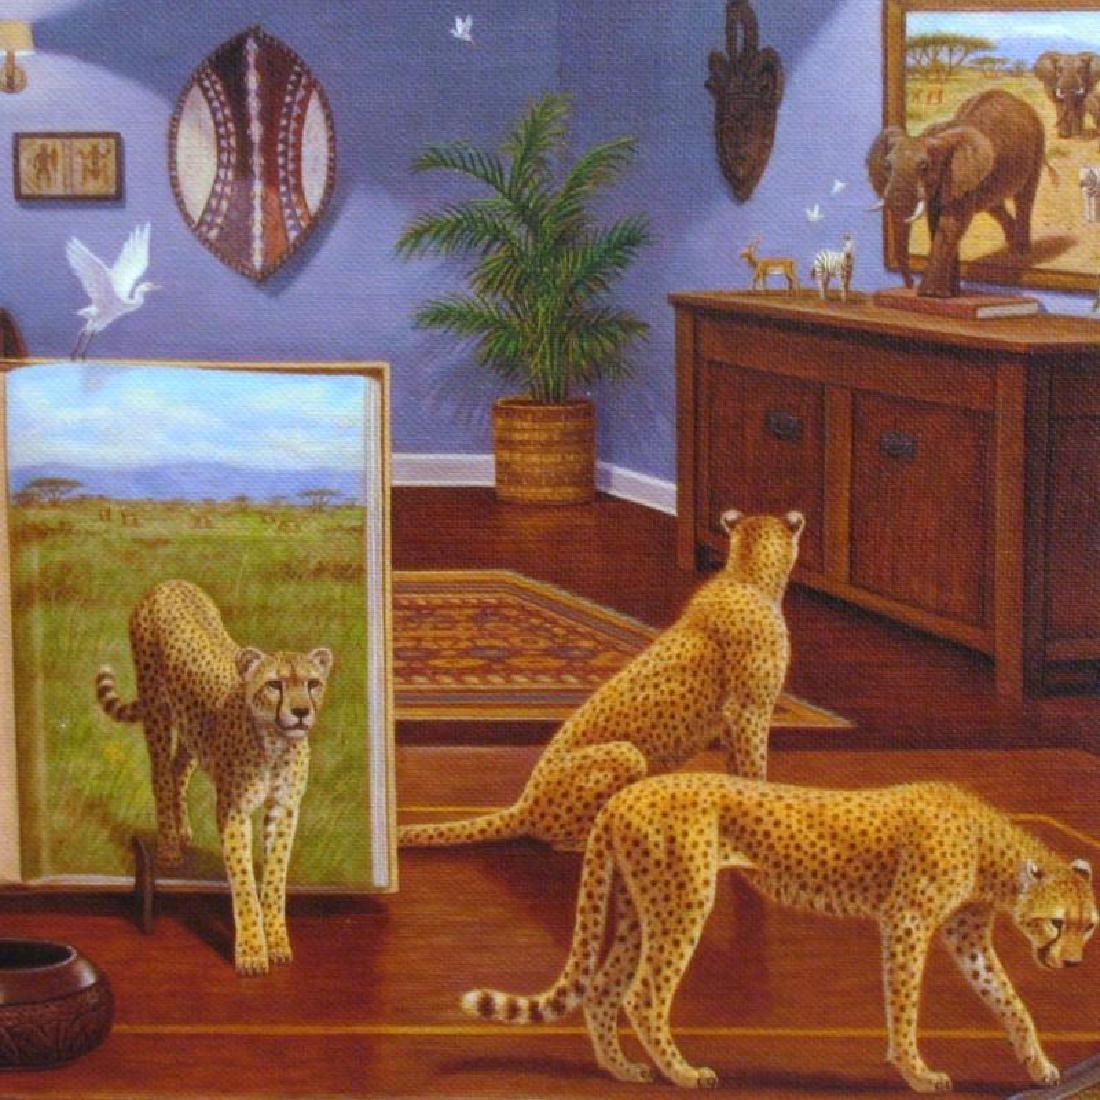 Newell Cheetahs Surreal Realism Limited Edition Signed - 2